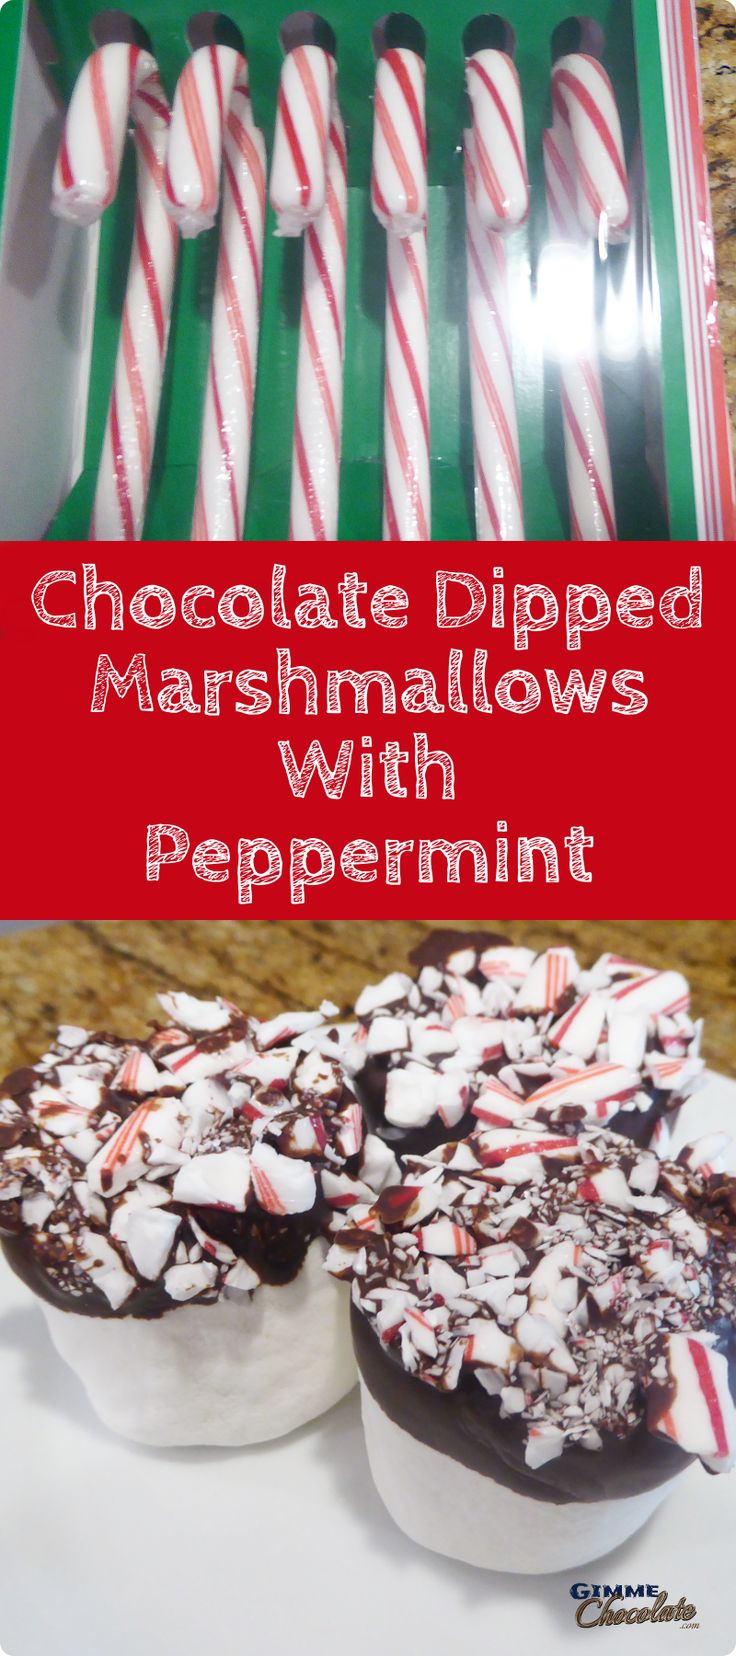 Chocolate Dipped Marshmallows With Peppermint